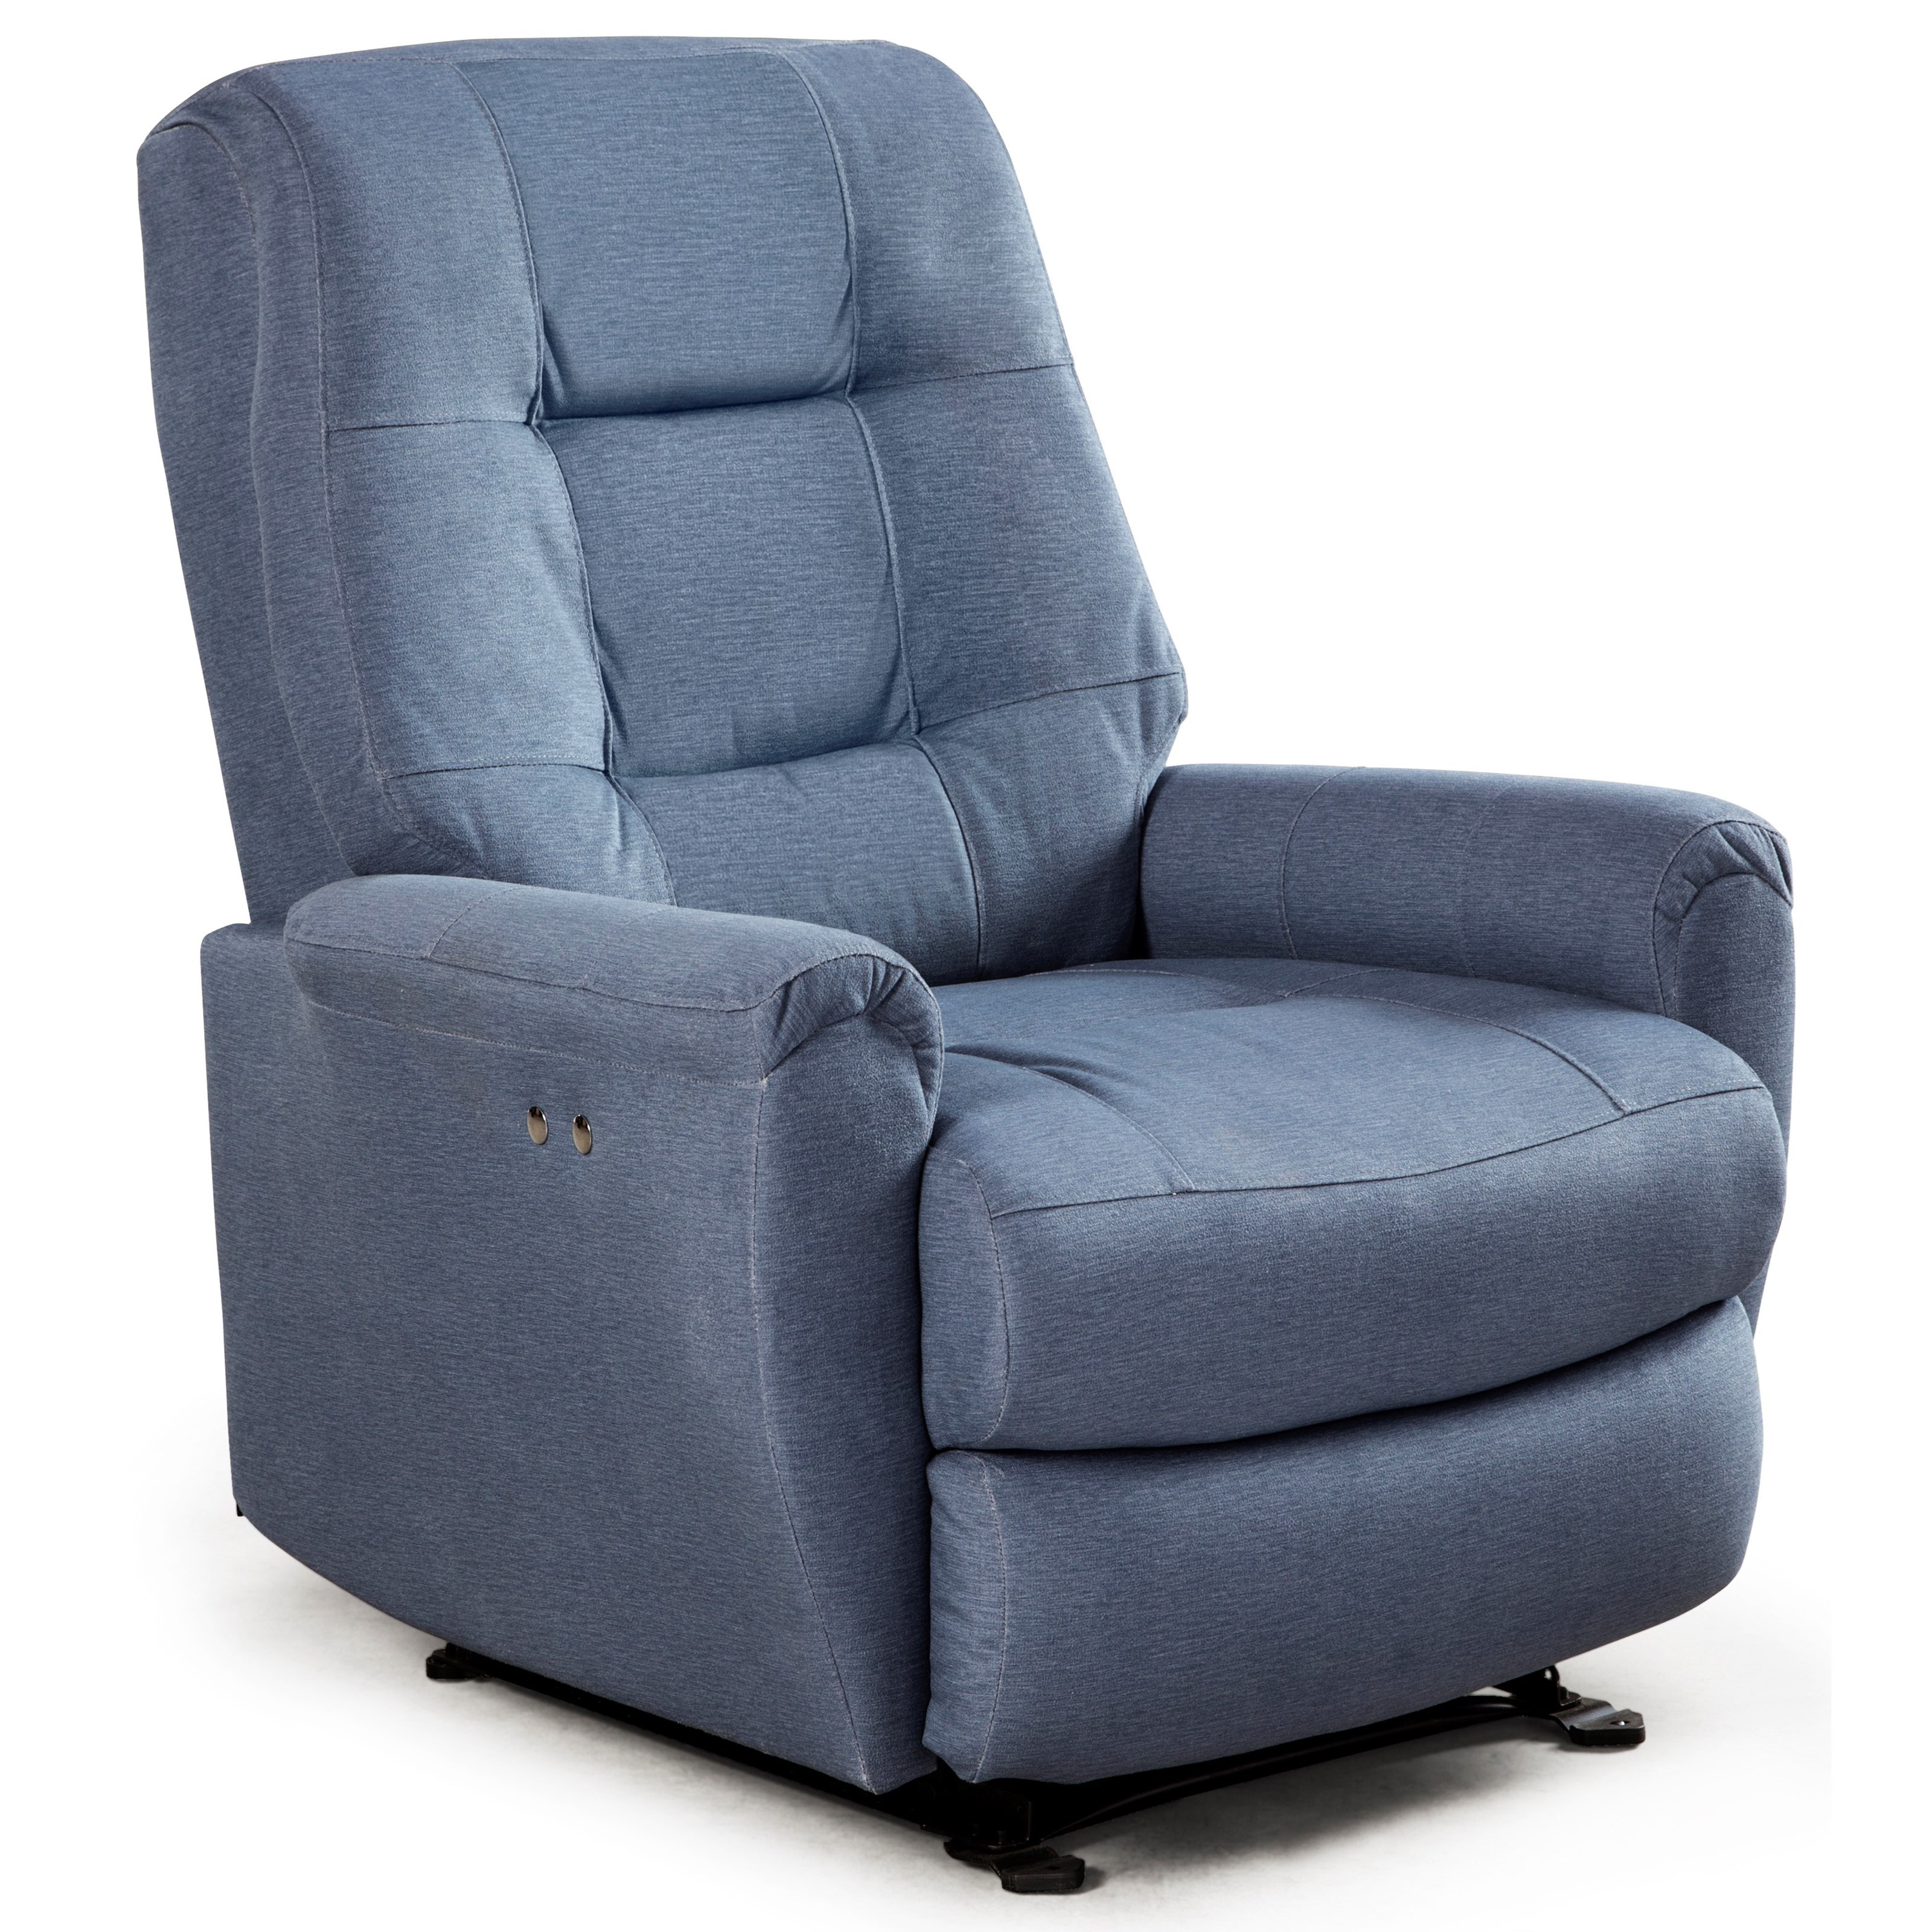 Petite Recliners Power Lift Recliner by Best Home Furnishings at Baer's Furniture